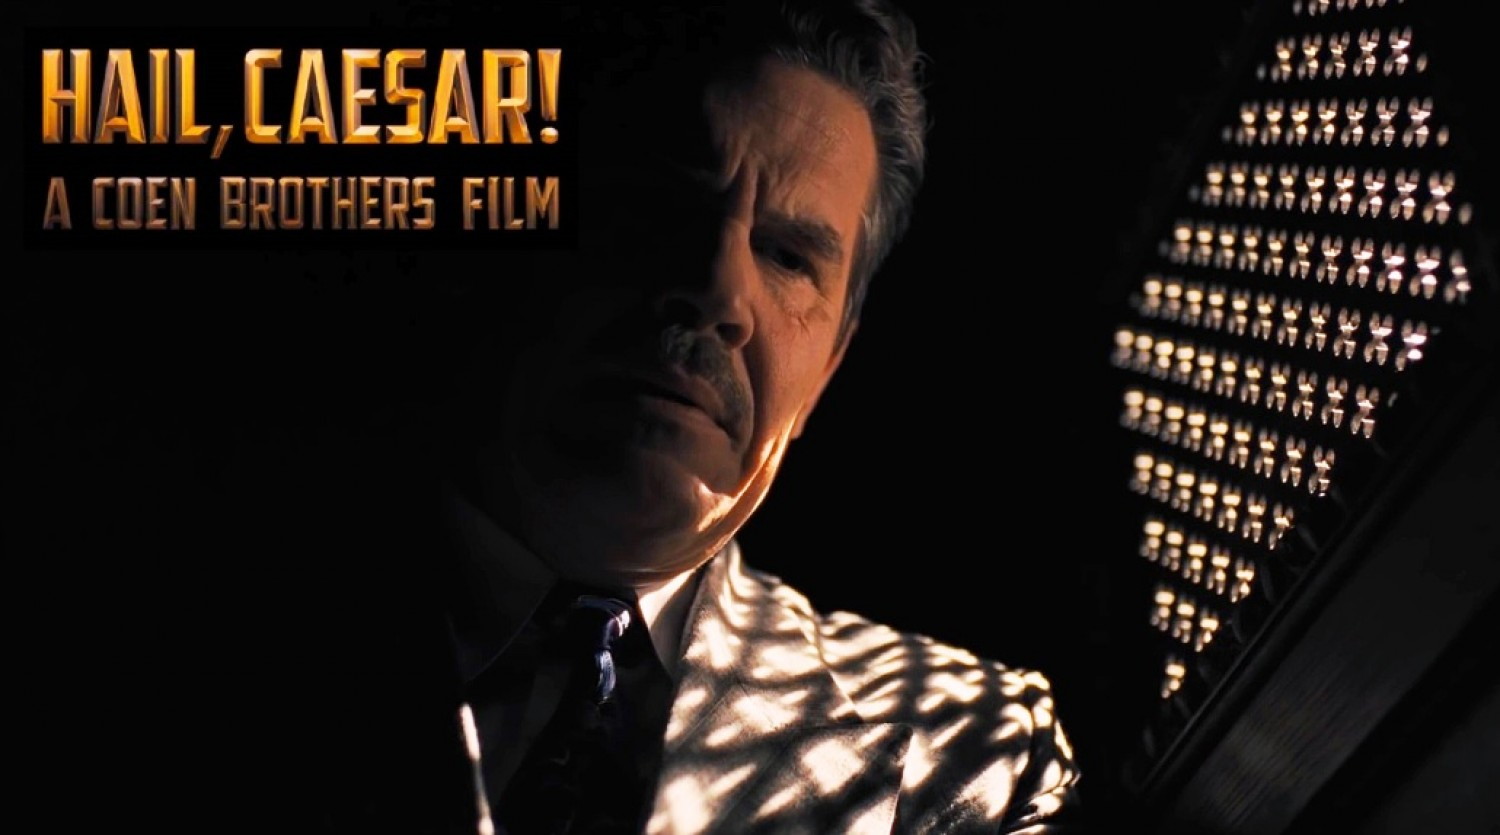 Hail Caesar! (2016) by Joel and Ethan Coen - Movie Review